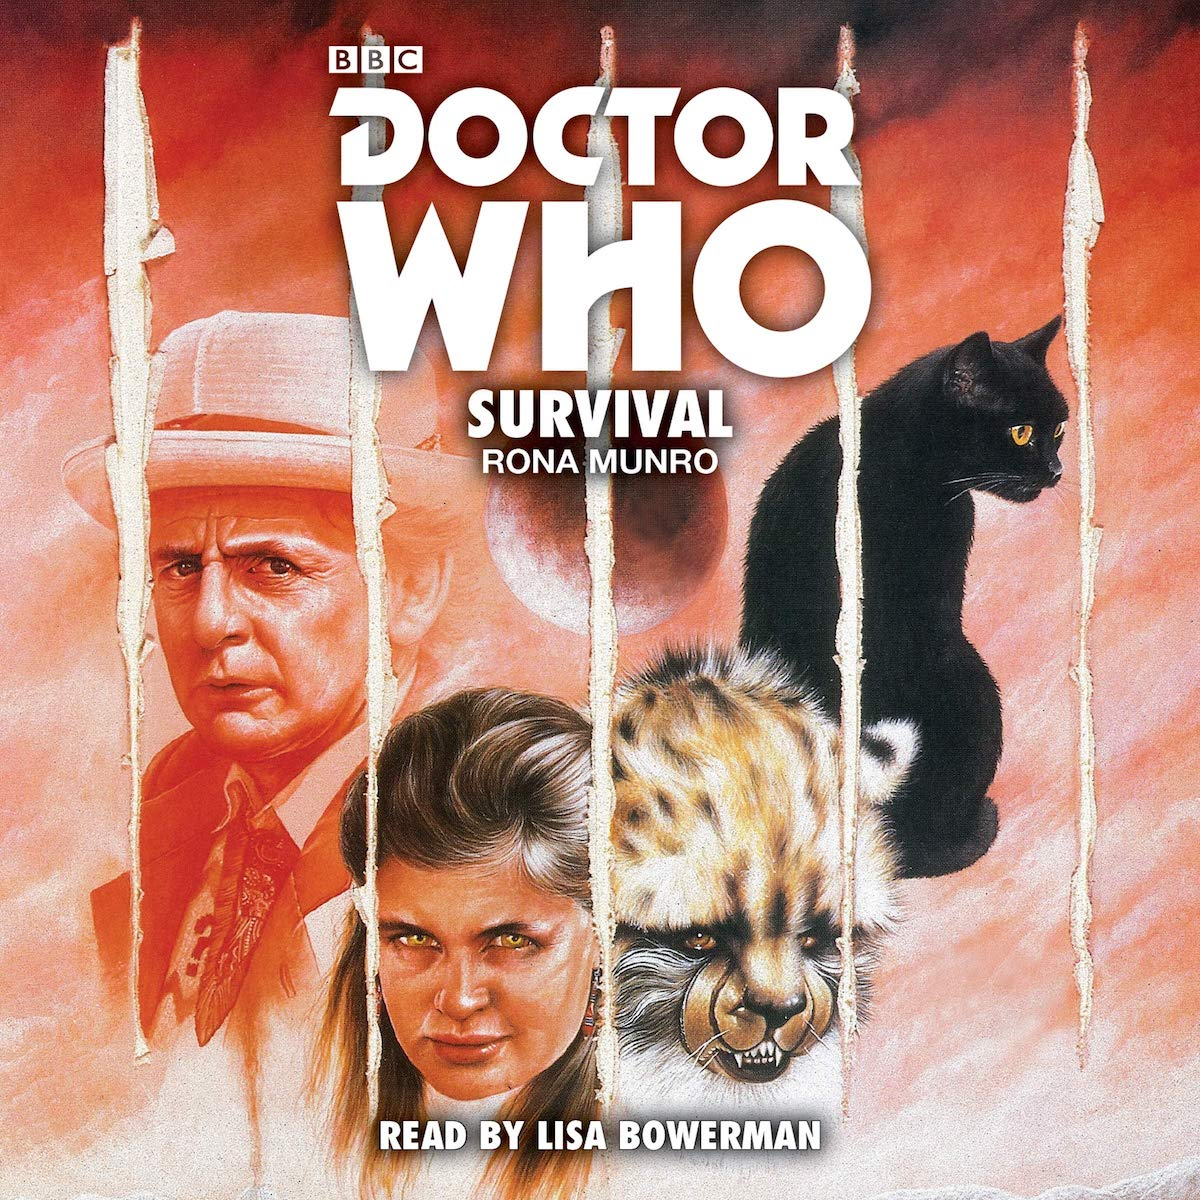 Doctor Who Survival Novel Reading